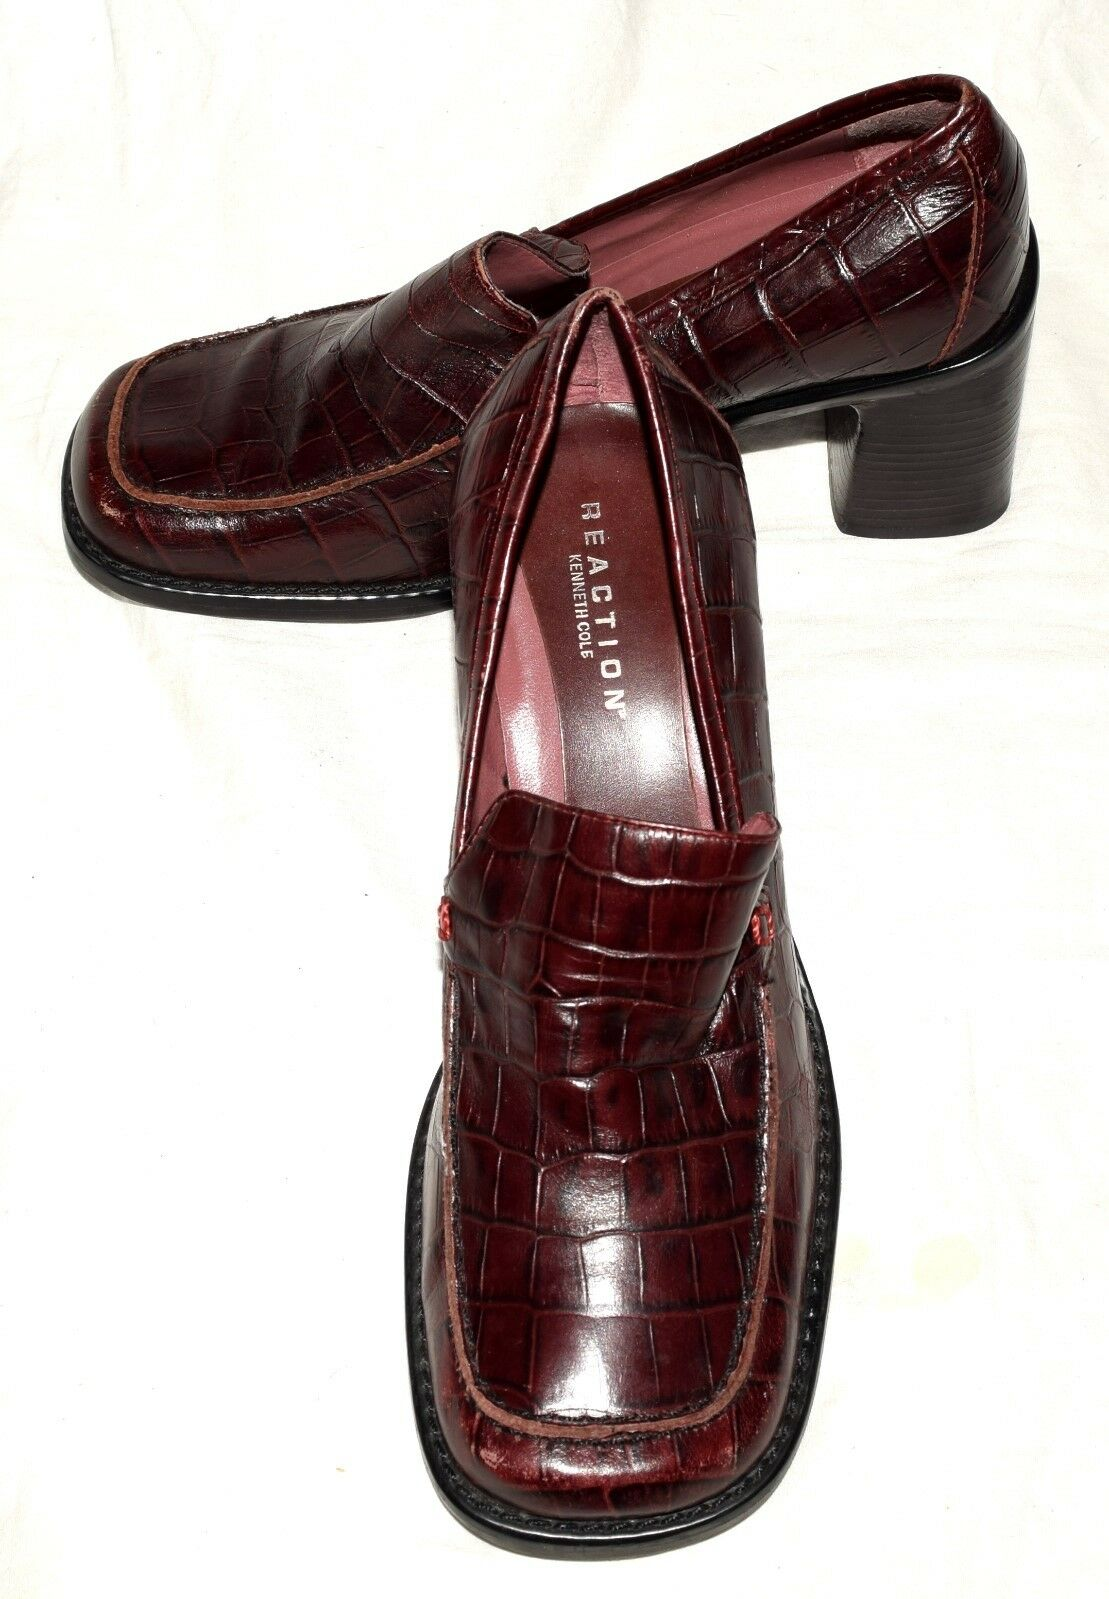 Kenneth Cole Reaction Roll Call Burgundy Croc Embossed Leather Loafer Heels Sz 6